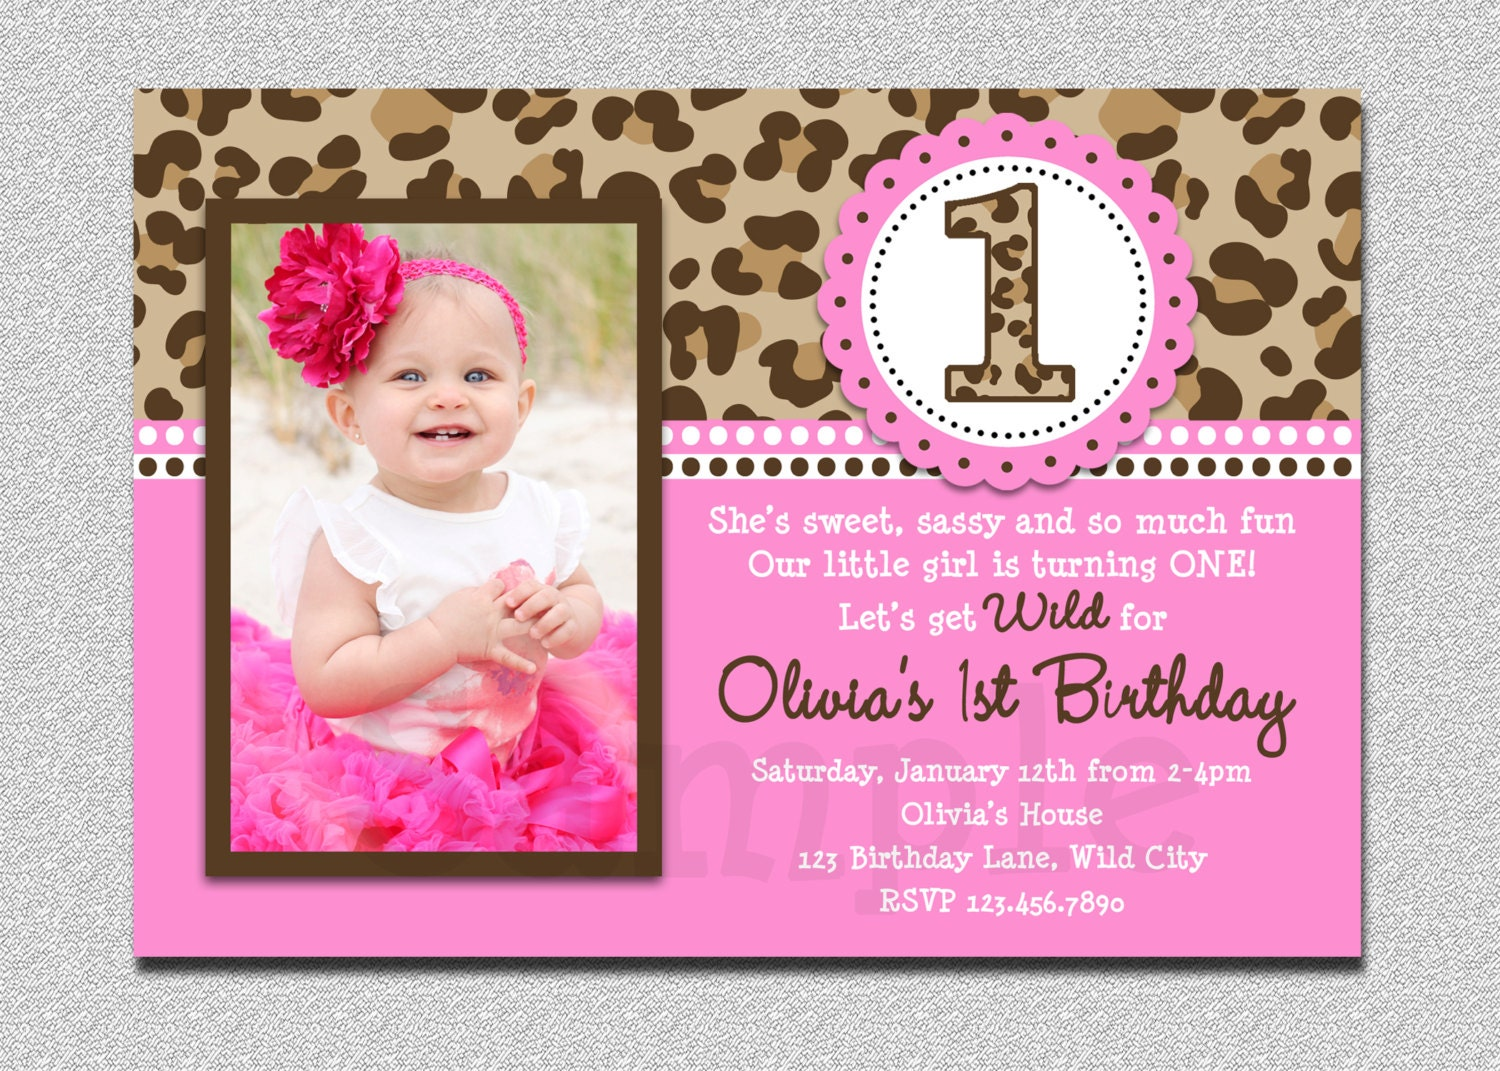 first birthday invites - Etame.mibawa.co